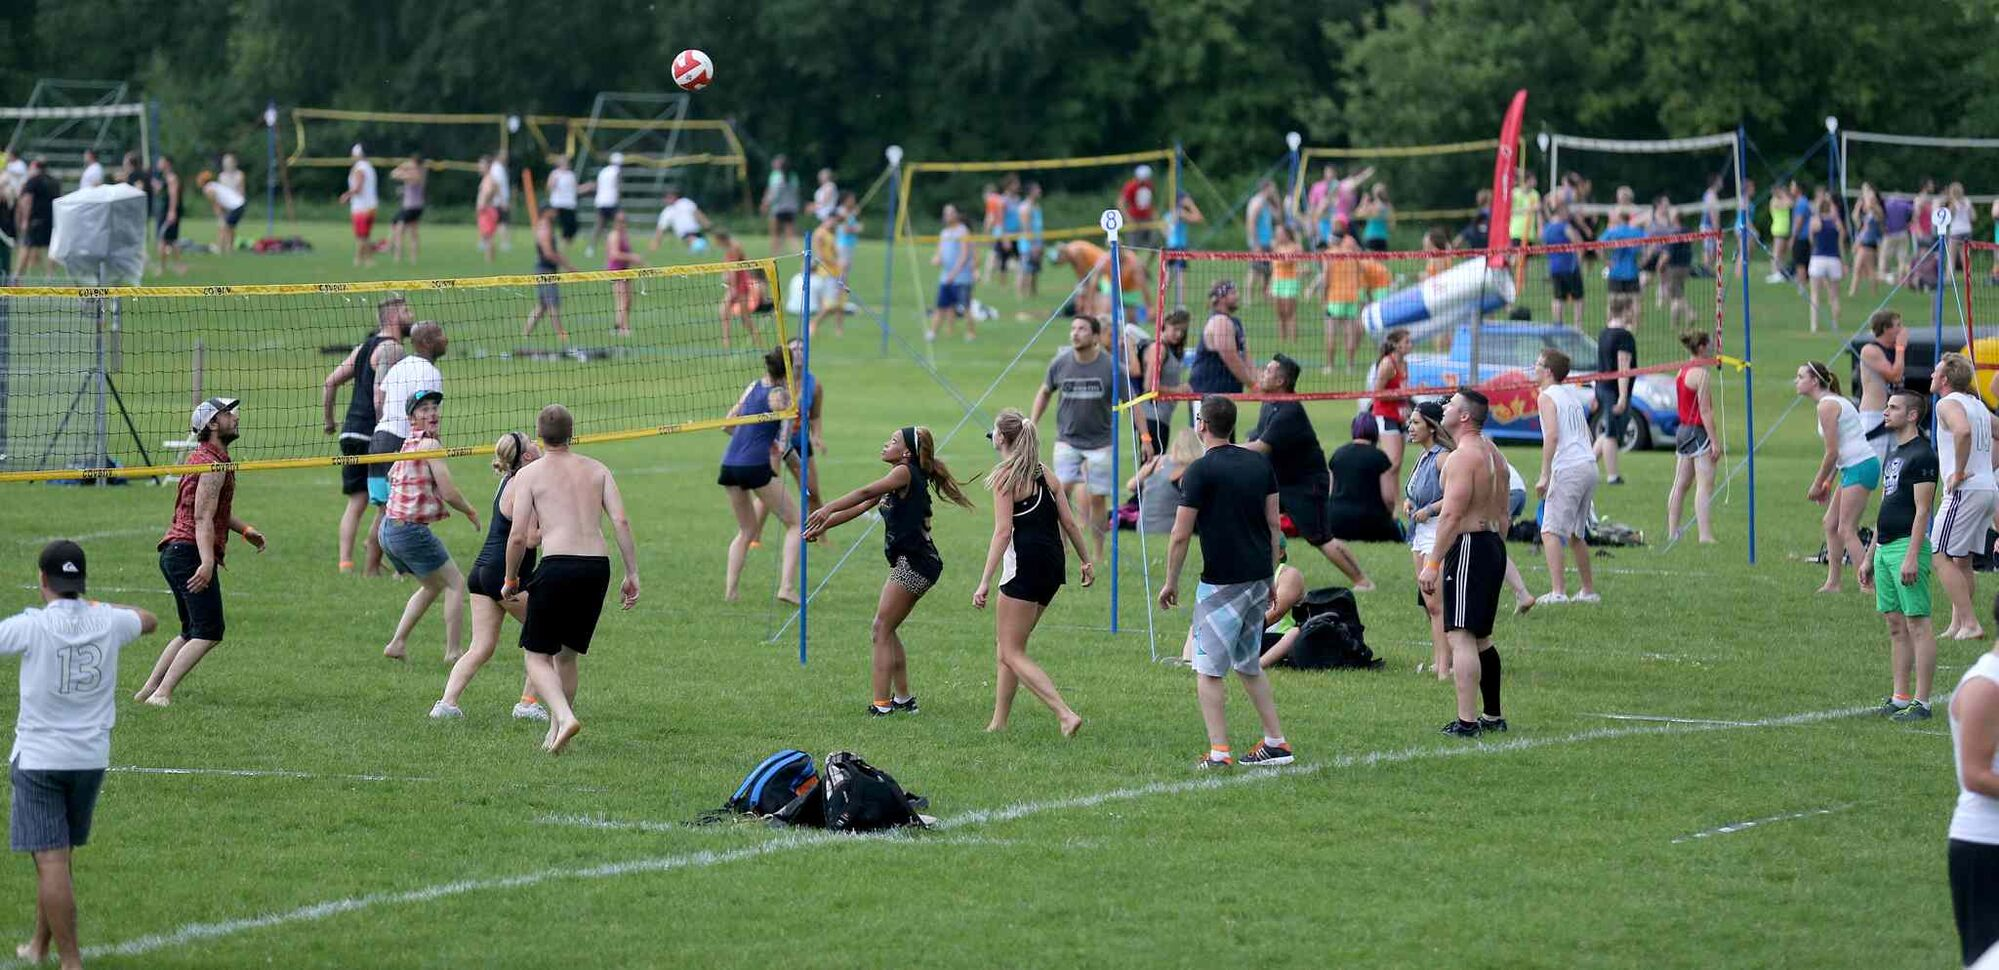 The Super-Spike volleyball tournament at Maple Grove Rugby Park, Friday, July 18, 2014.  (TREVOR HAGAN/WINNIPEG FREE PRESS)